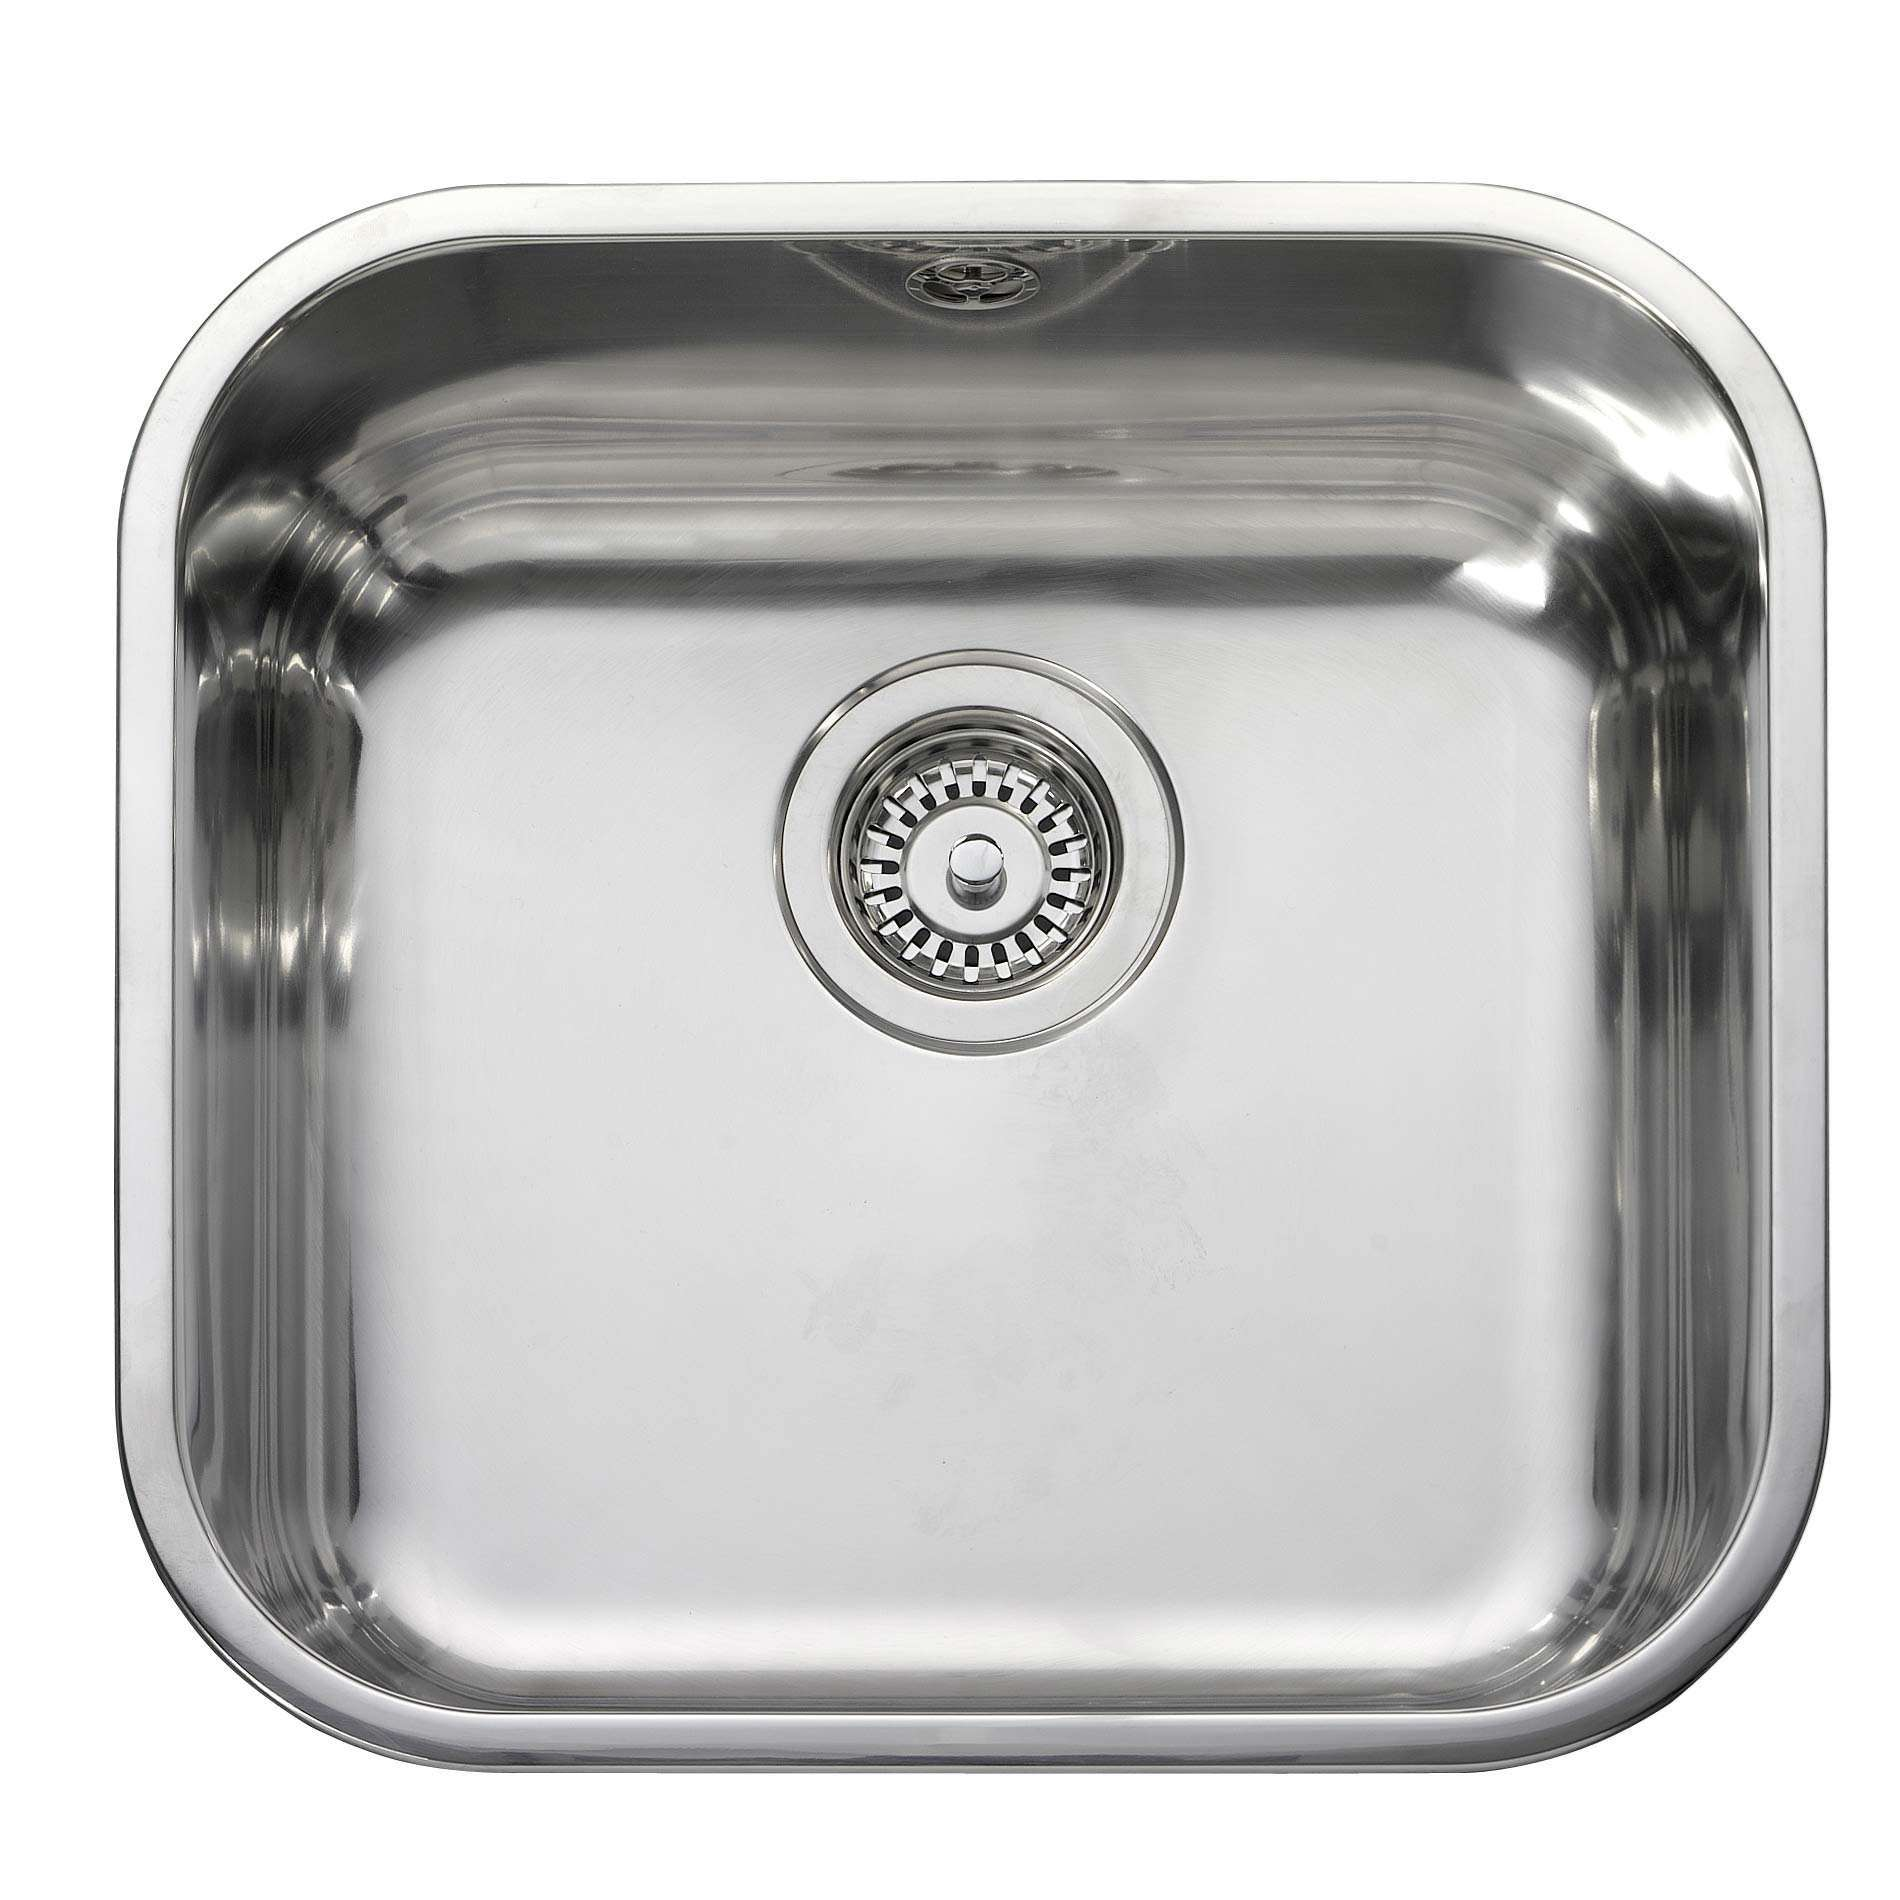 Leisure Single Bowl Bss40 Stainless Steel Sink Kitchen